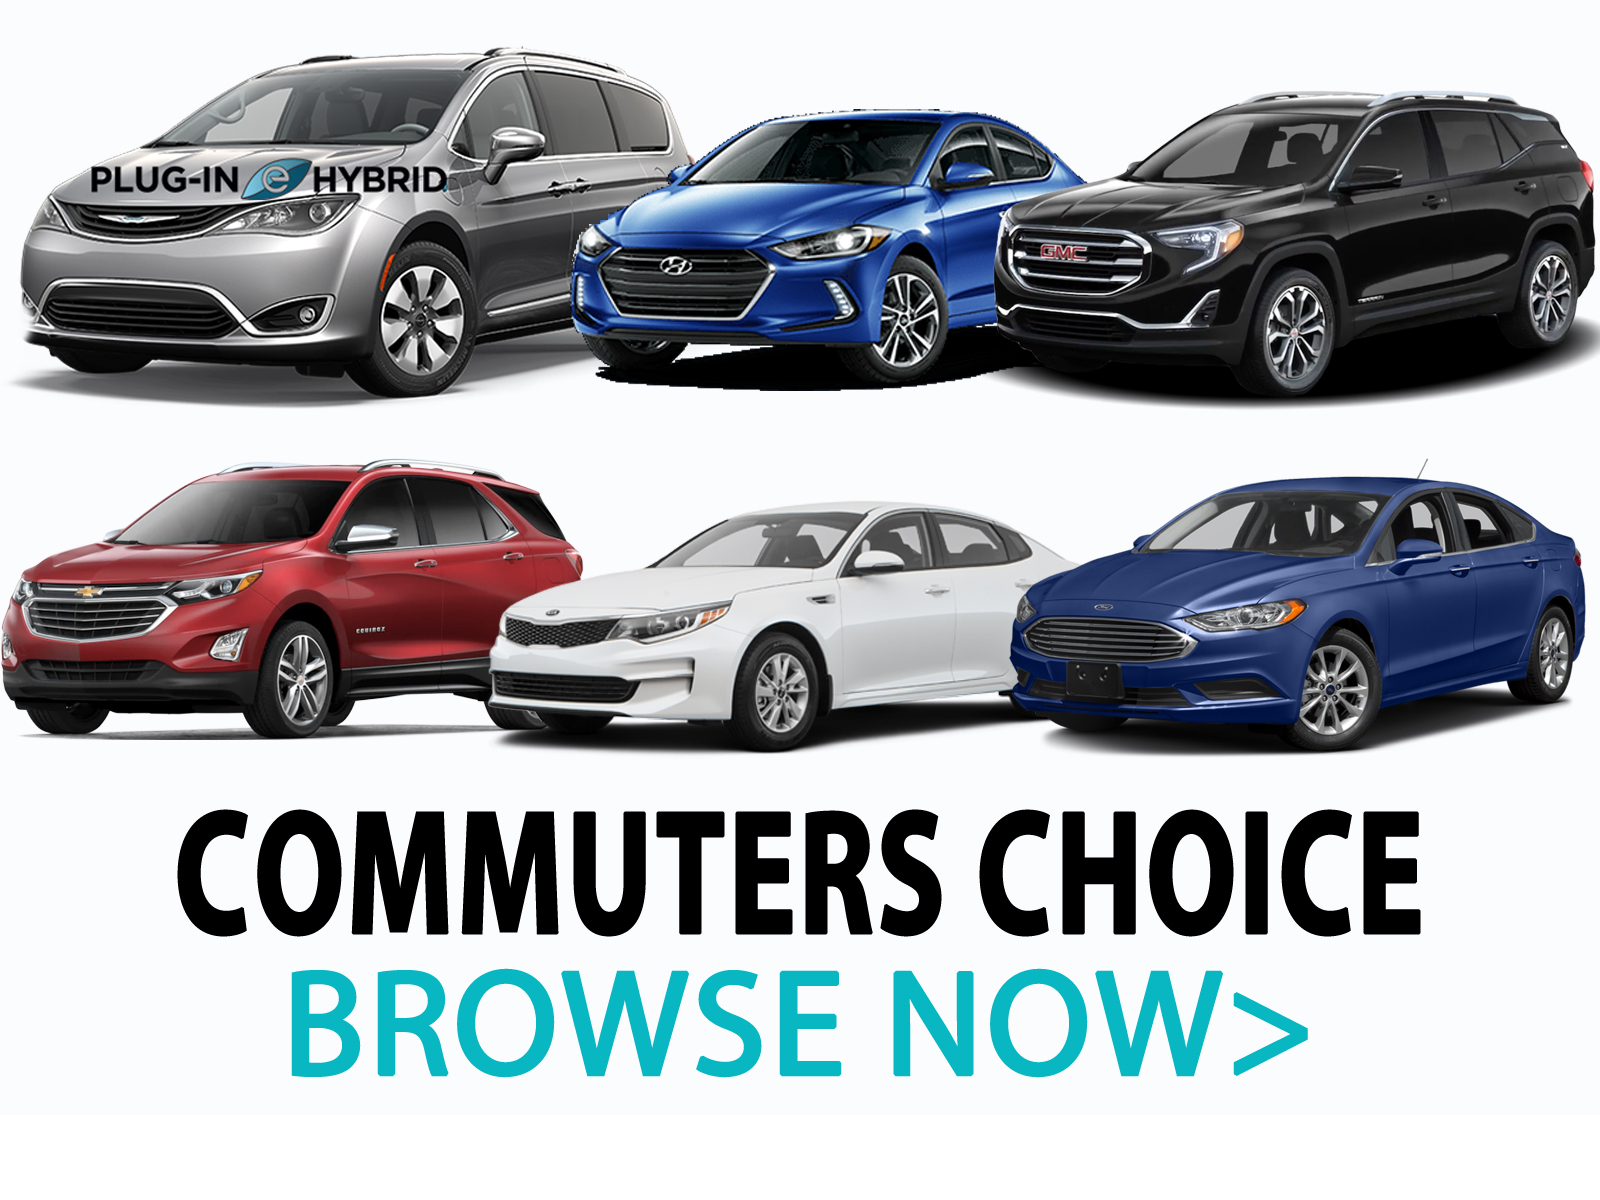 Vehicles for Commuters